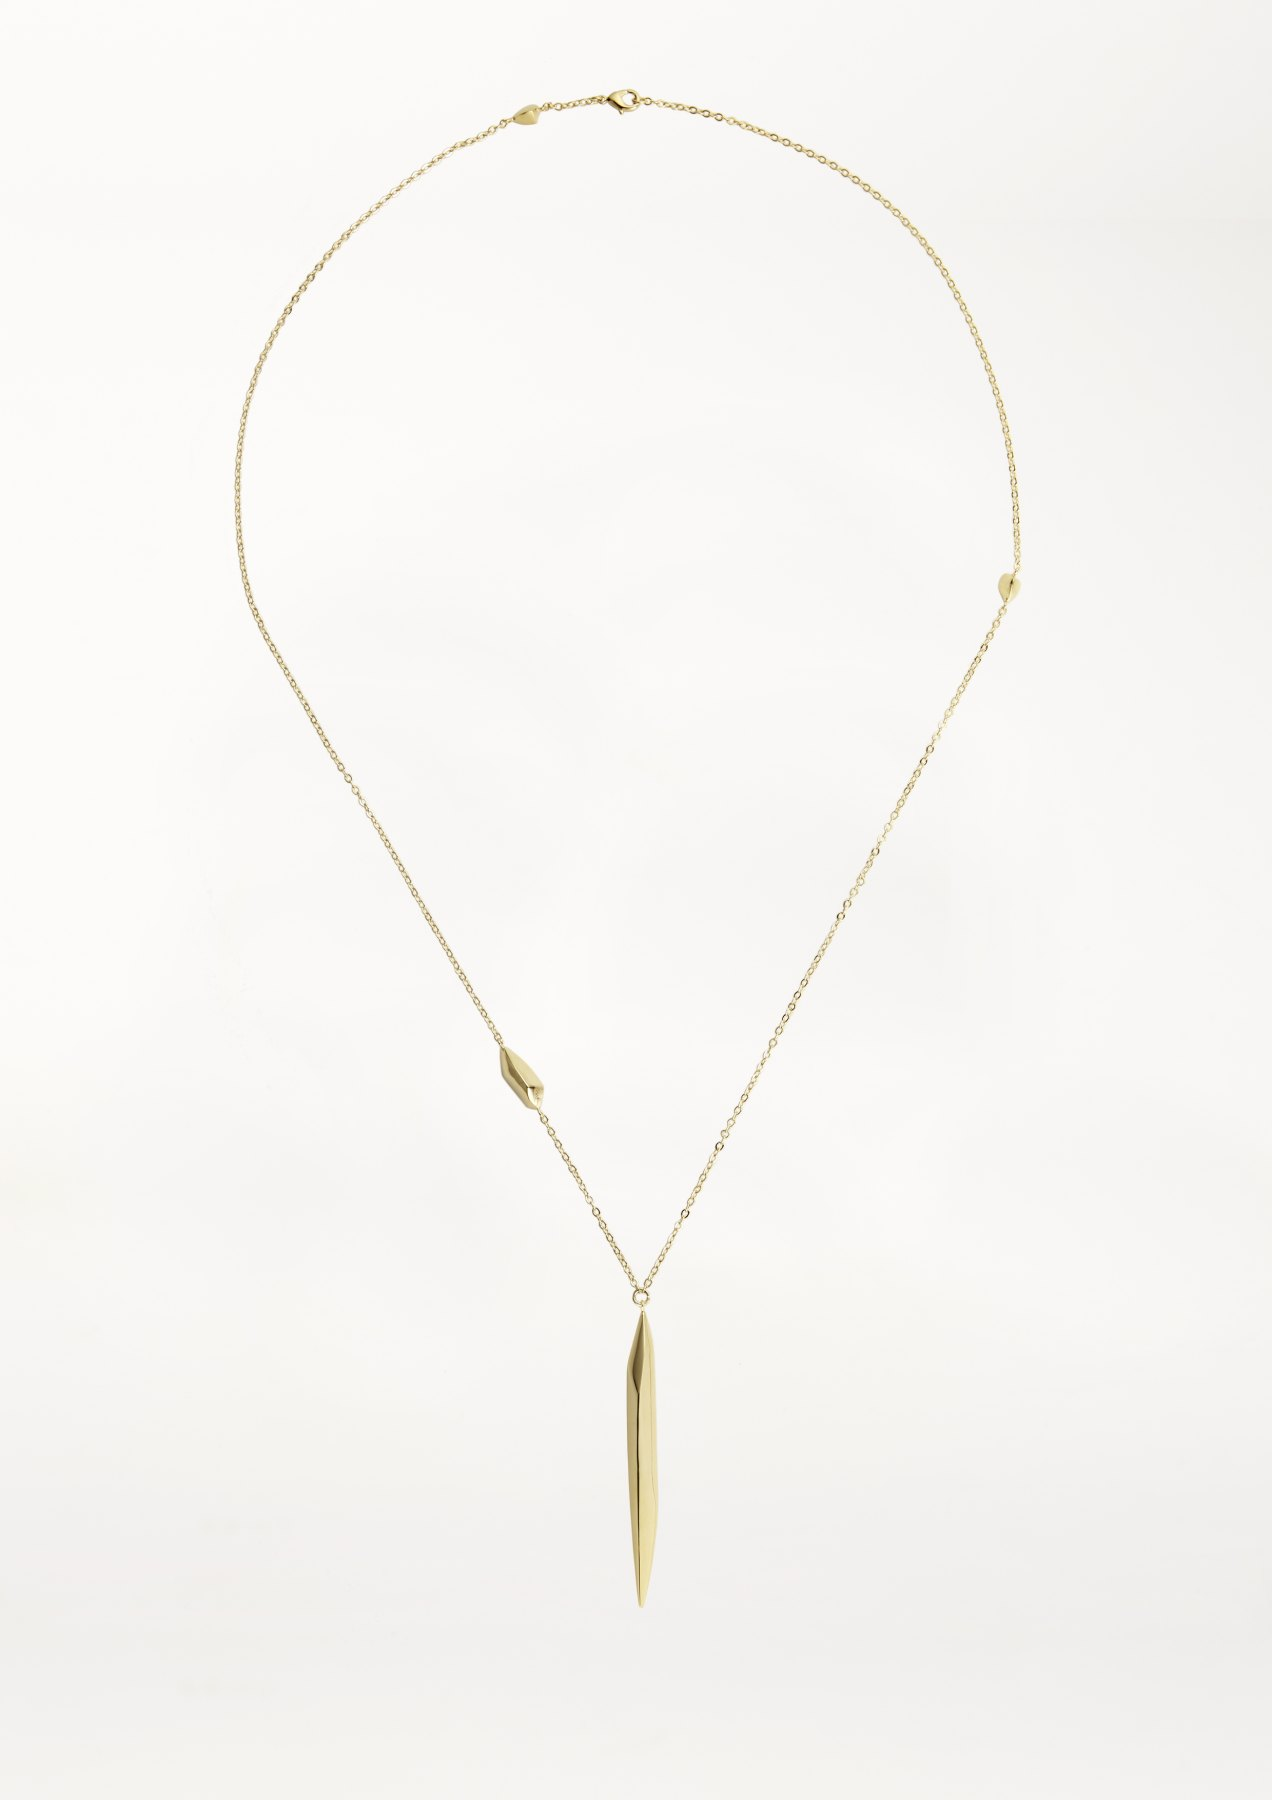 xenia bous jewellery washed stone 11 stream dust necklace gold silver